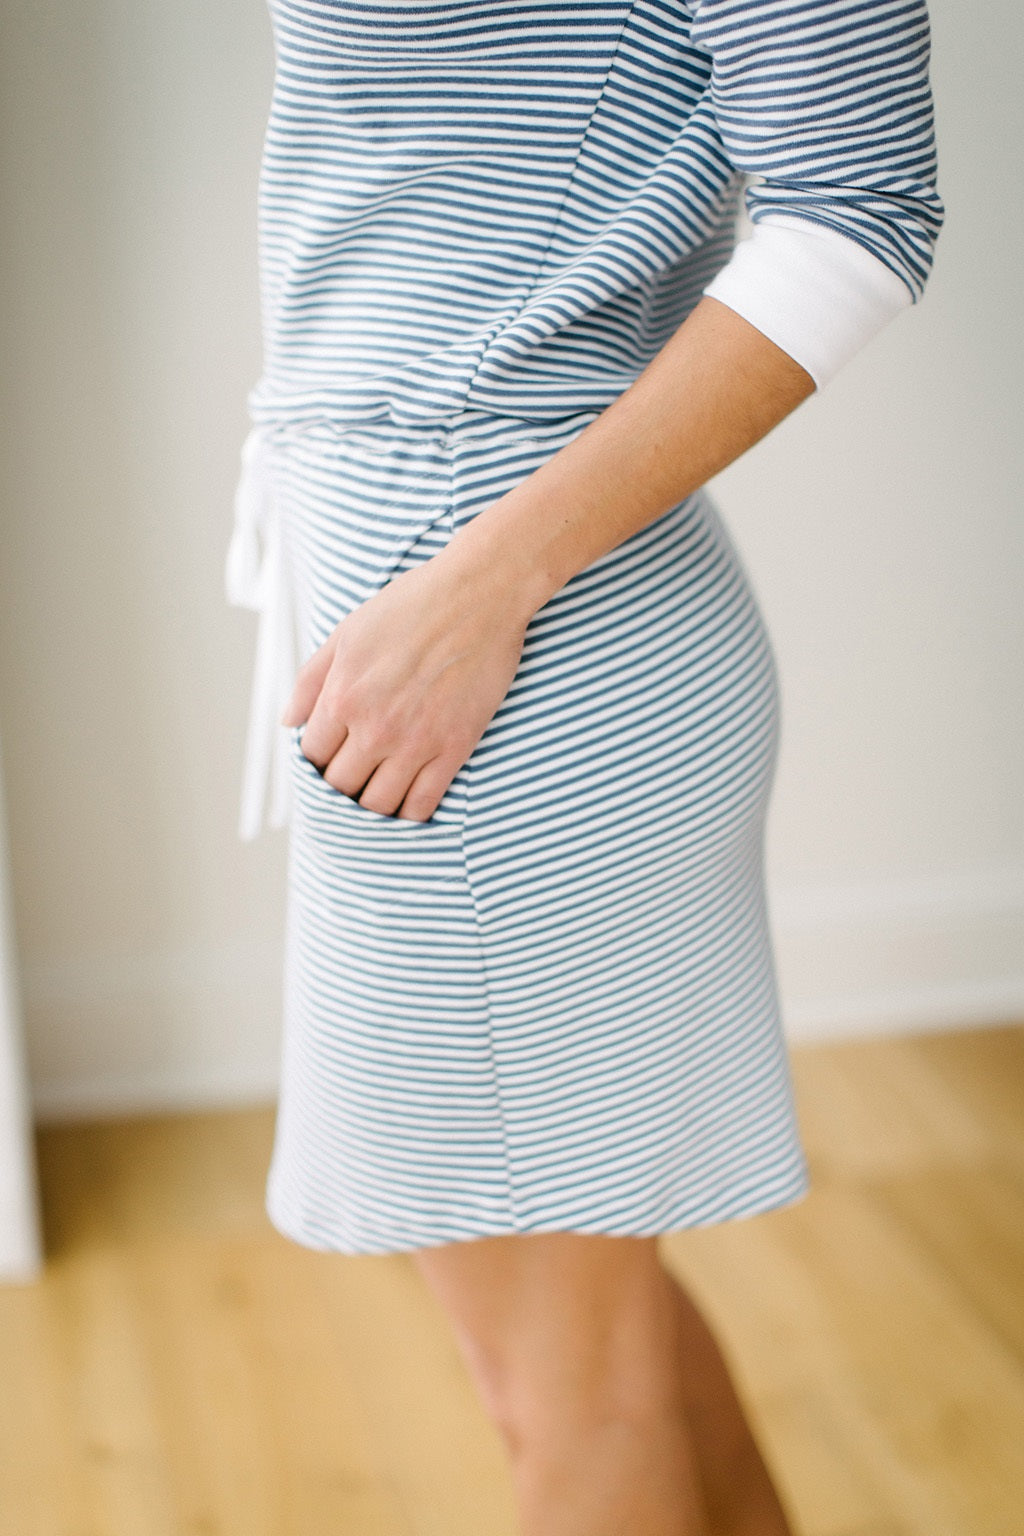 KOKOON Nantucket Drop Waist Dress in Sailor Stripe Side Skirt